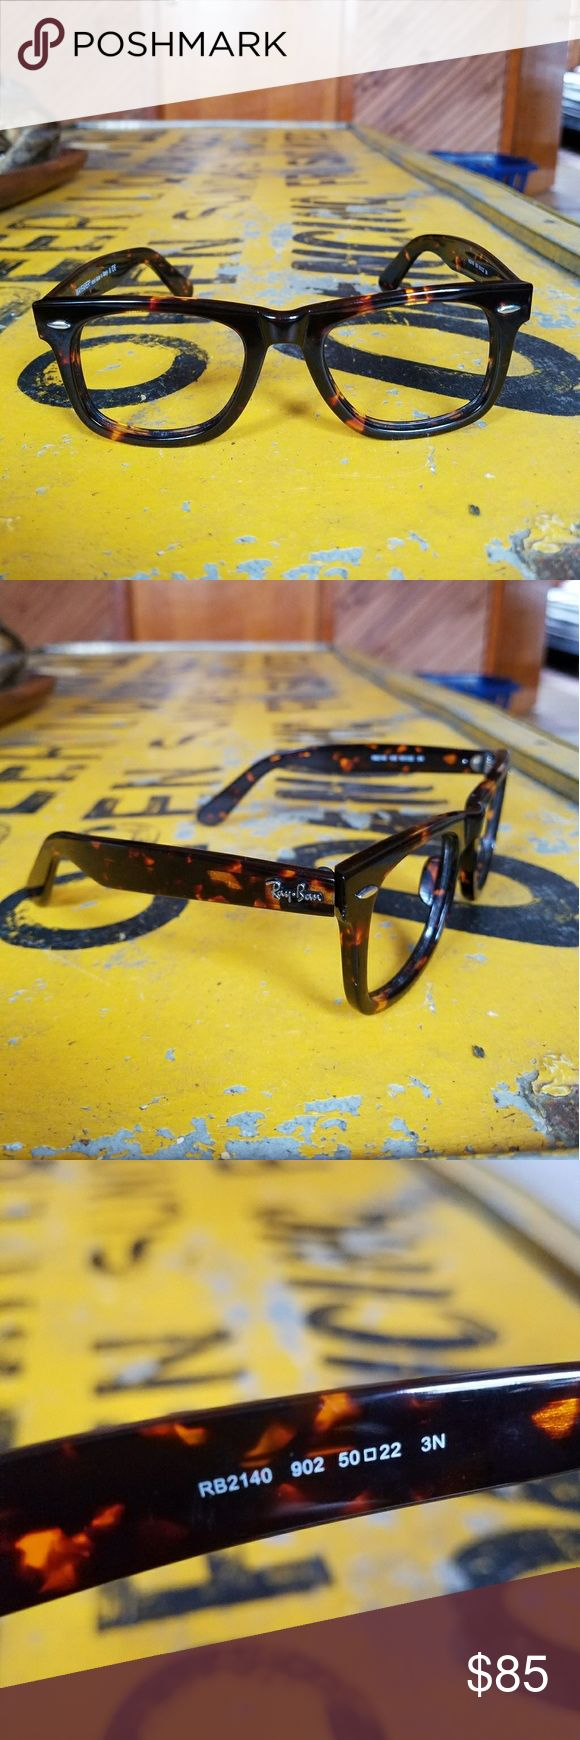 Ray Ban Original Wayfarer Frames Only Made in Italy. Original Wayfarer. Tortoise color. RB2140, 50mm. Unisex style. Frames ONLY- can be fitted with sunglass and/or clear prescription lenses. Never goes out of style. ray ban Accessories Sunglasses